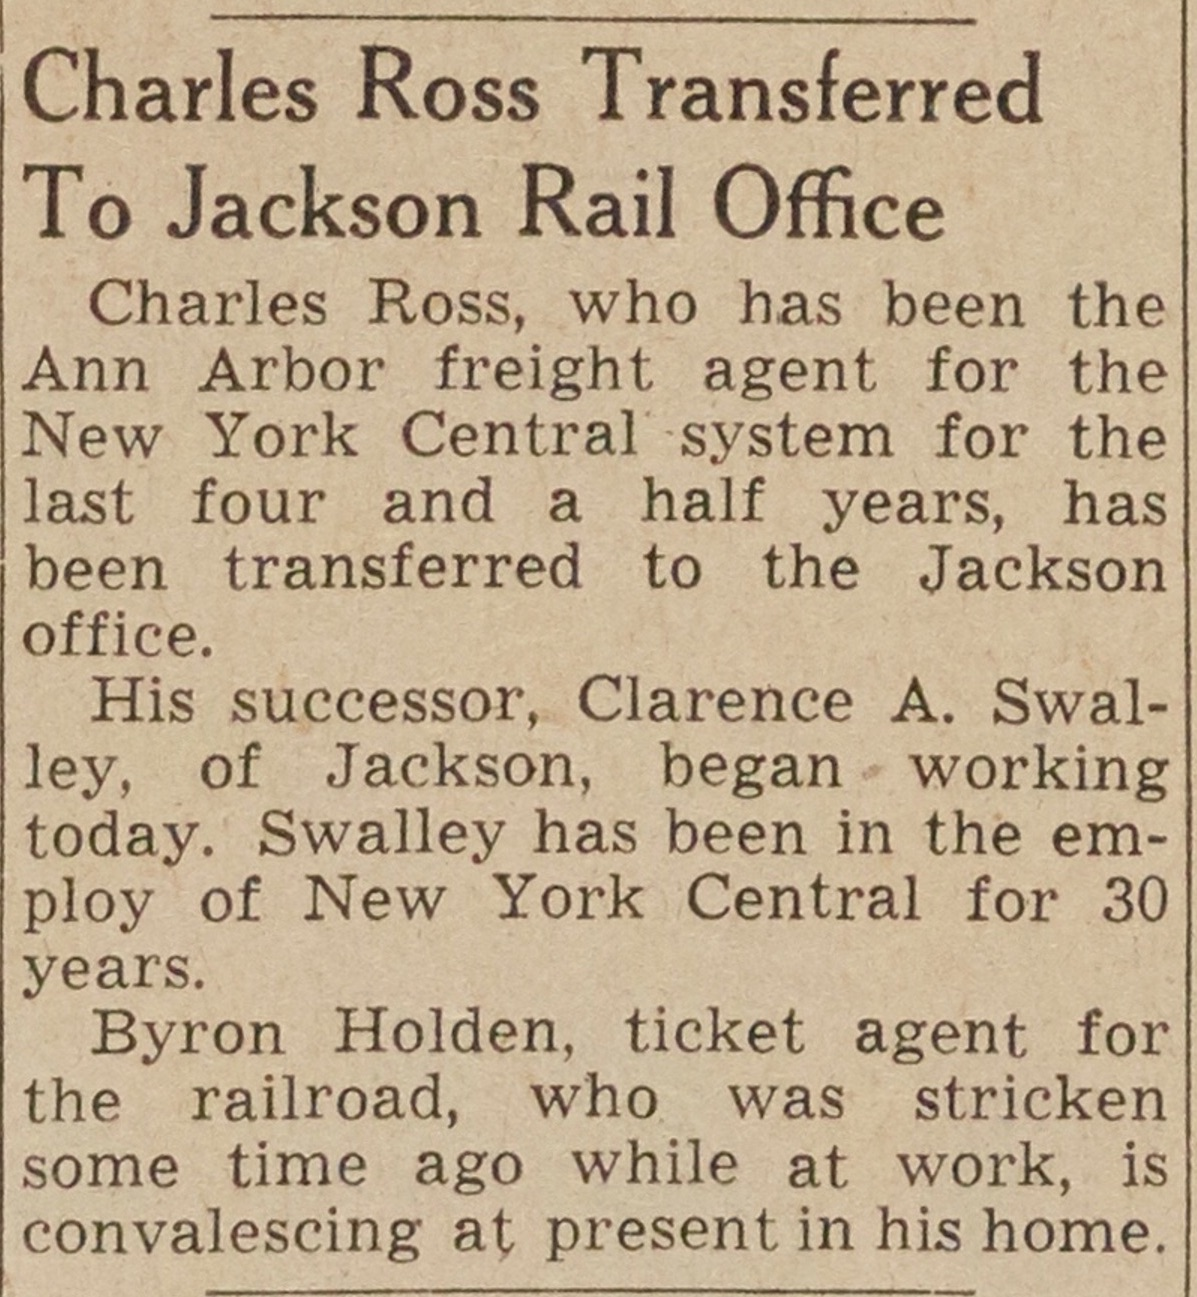 Charles Ross Transferred To Jackson Rail Office image